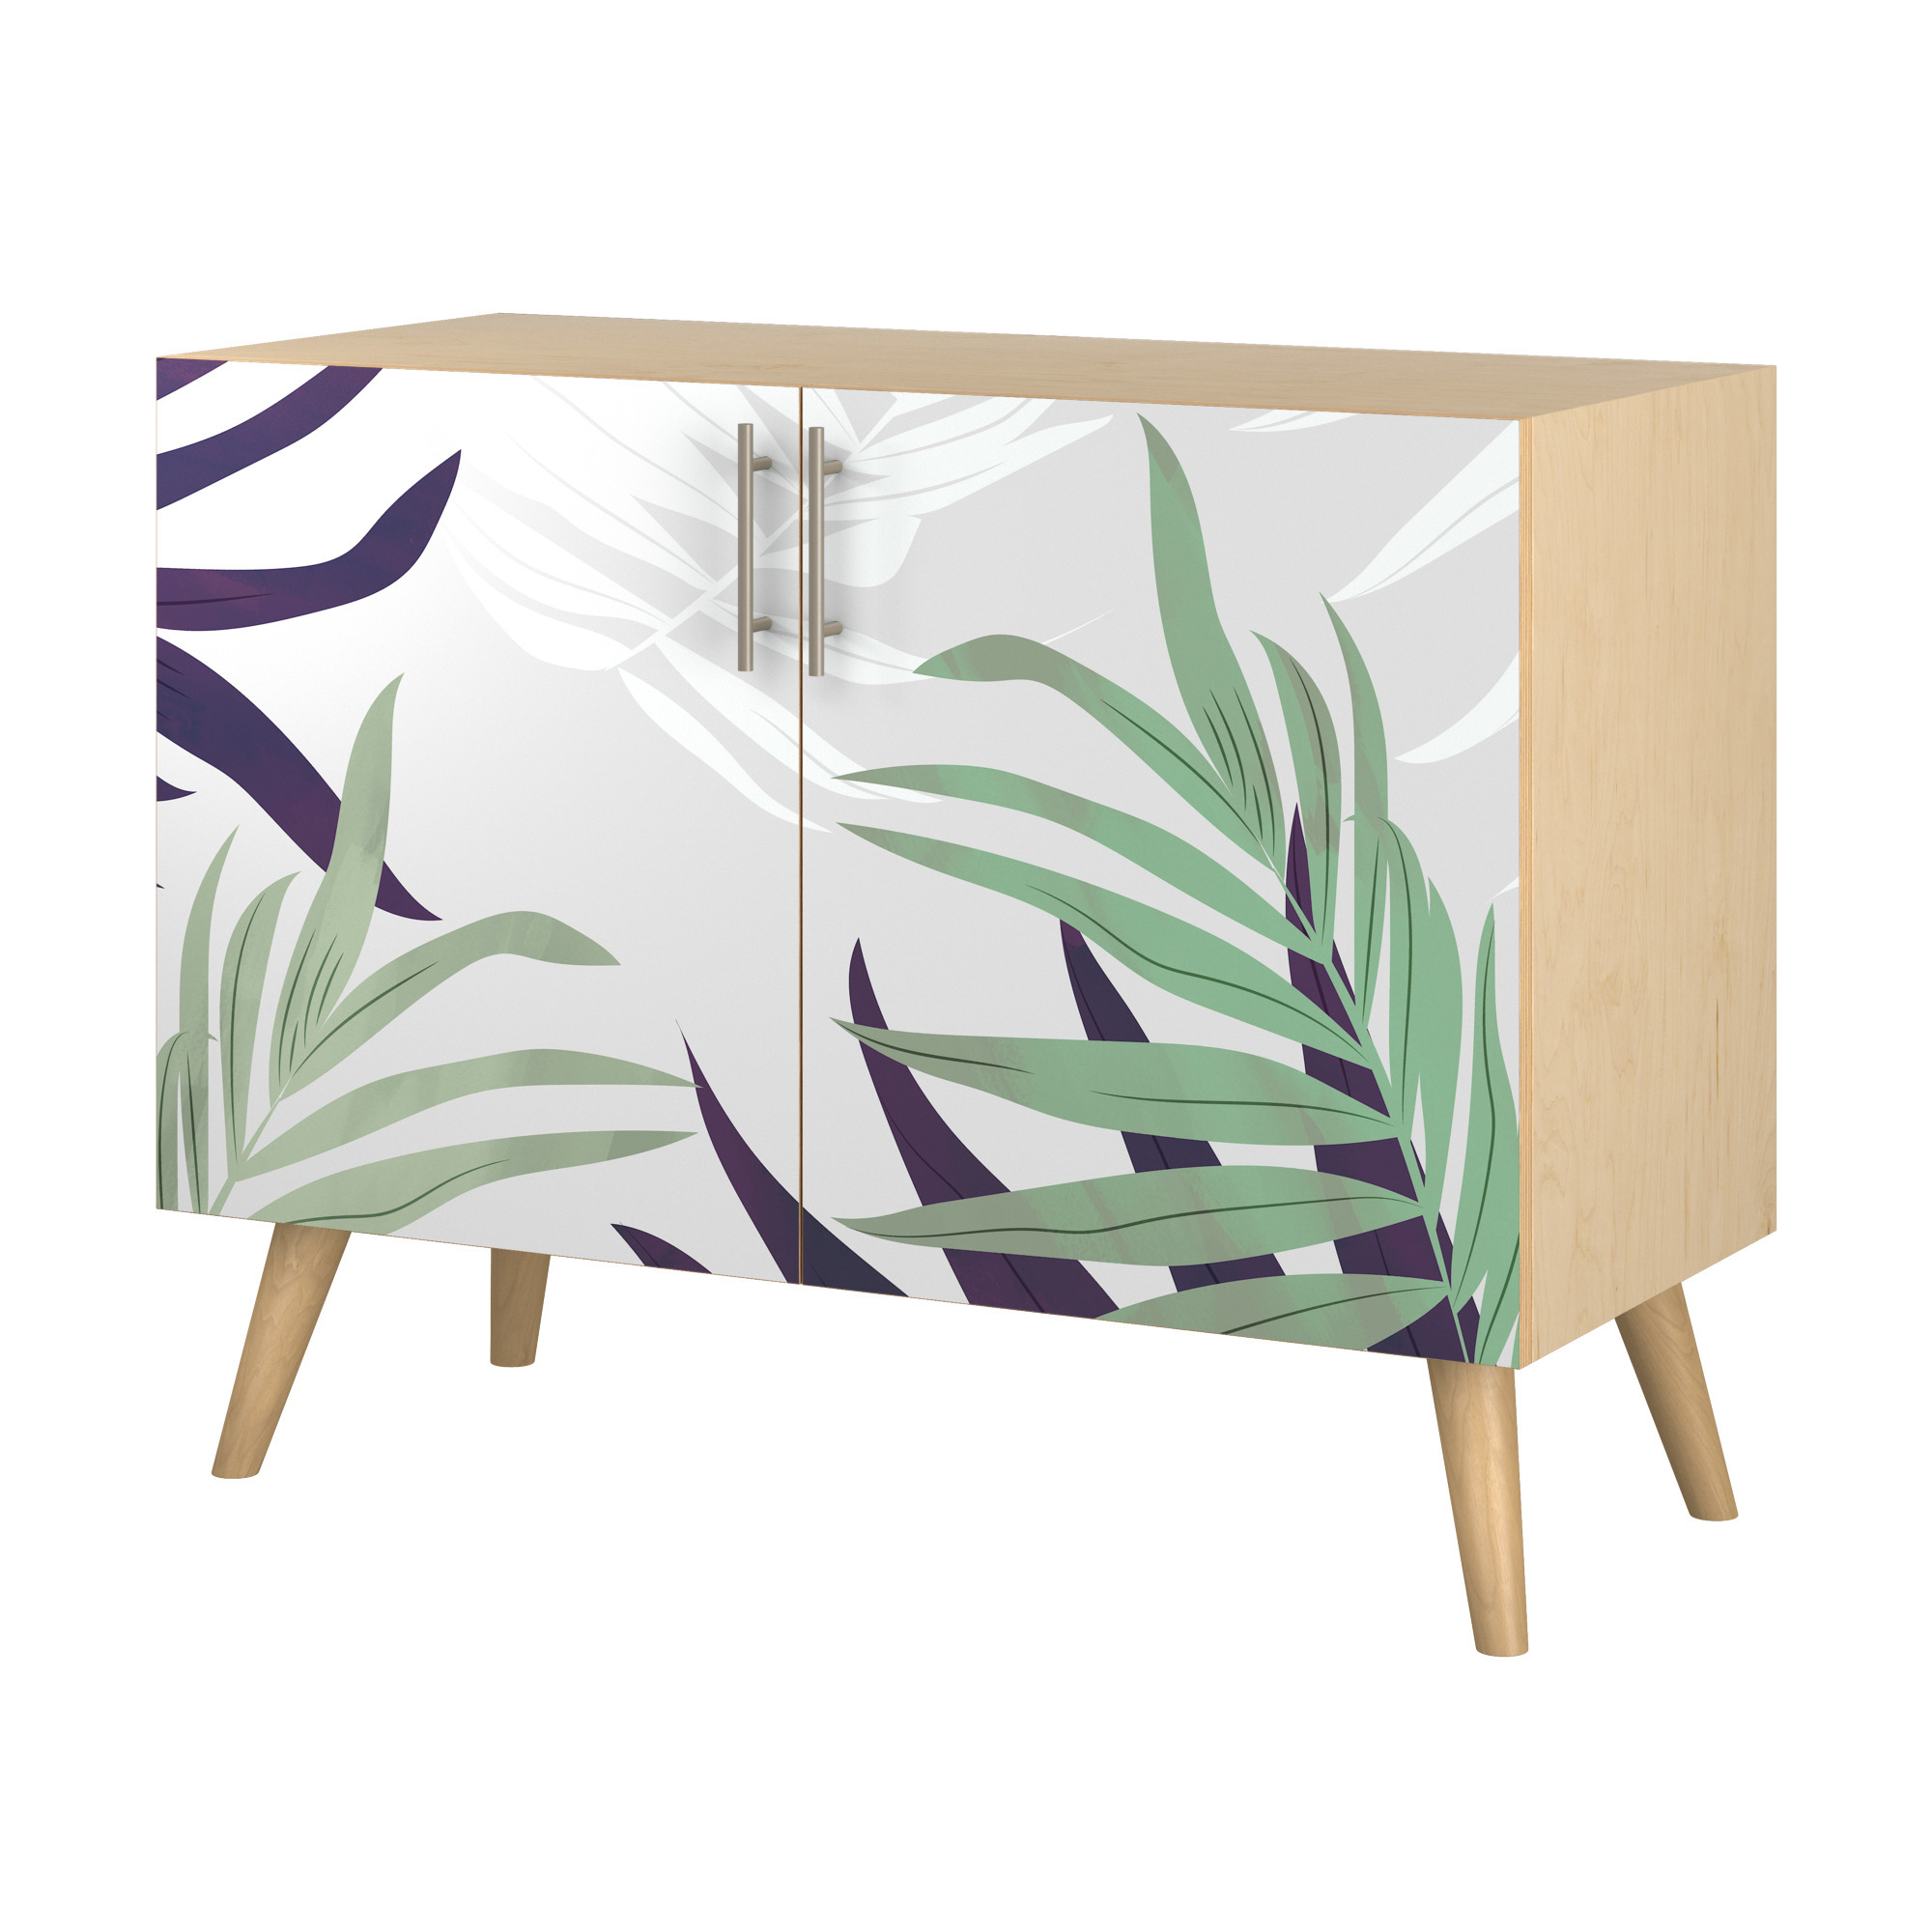 Customize Credenzas | Snugsquare With Regard To Southwest Pink Credenzas (View 7 of 20)